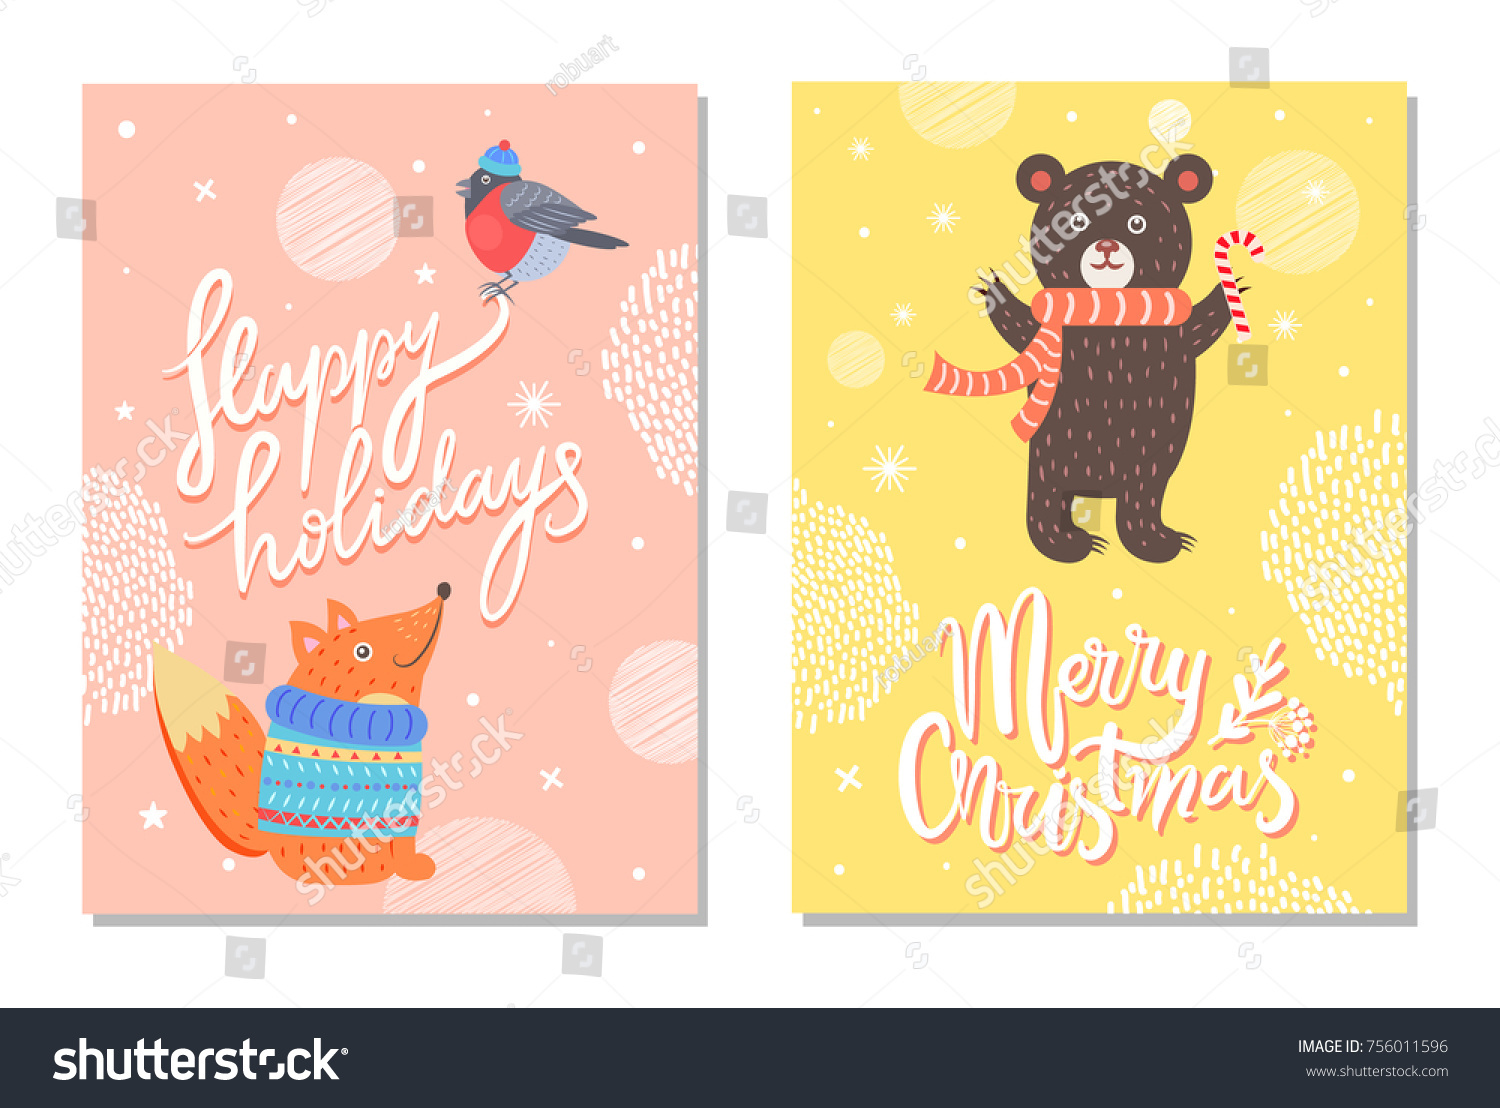 Happy Holidays Merry Christmas Greeting Cards Stock Vector Hd